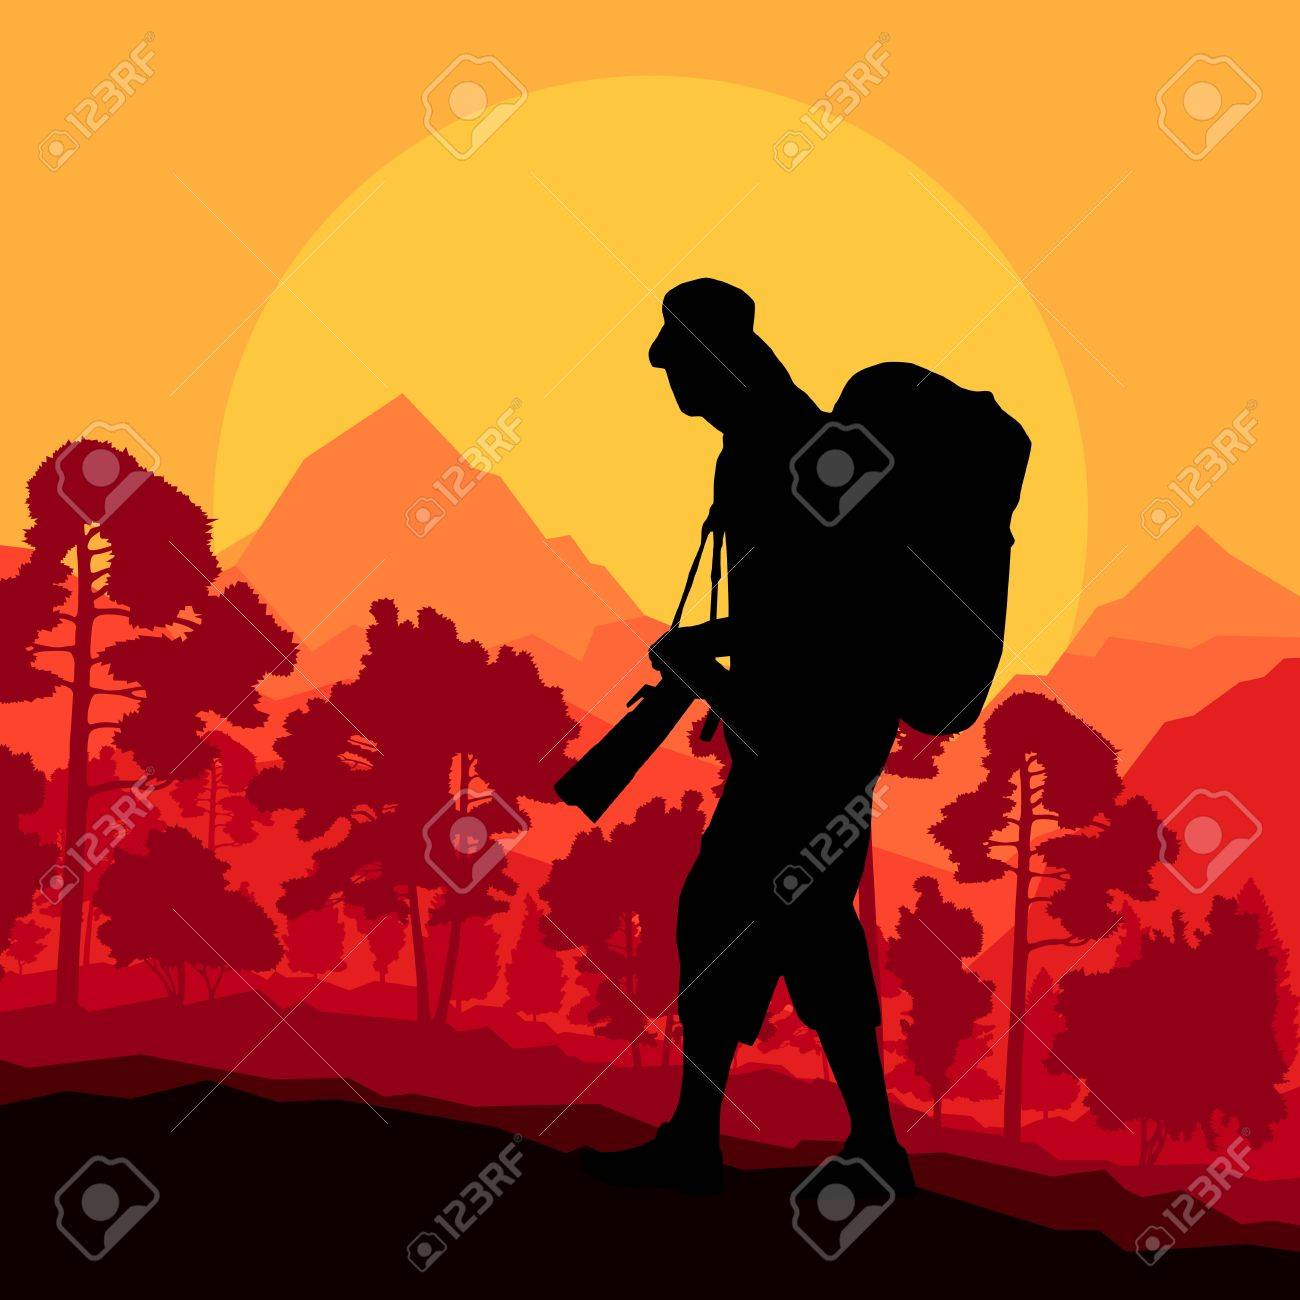 Photographer silhouette in wild mountain forest nature landscape background Stock Vector - 20462516